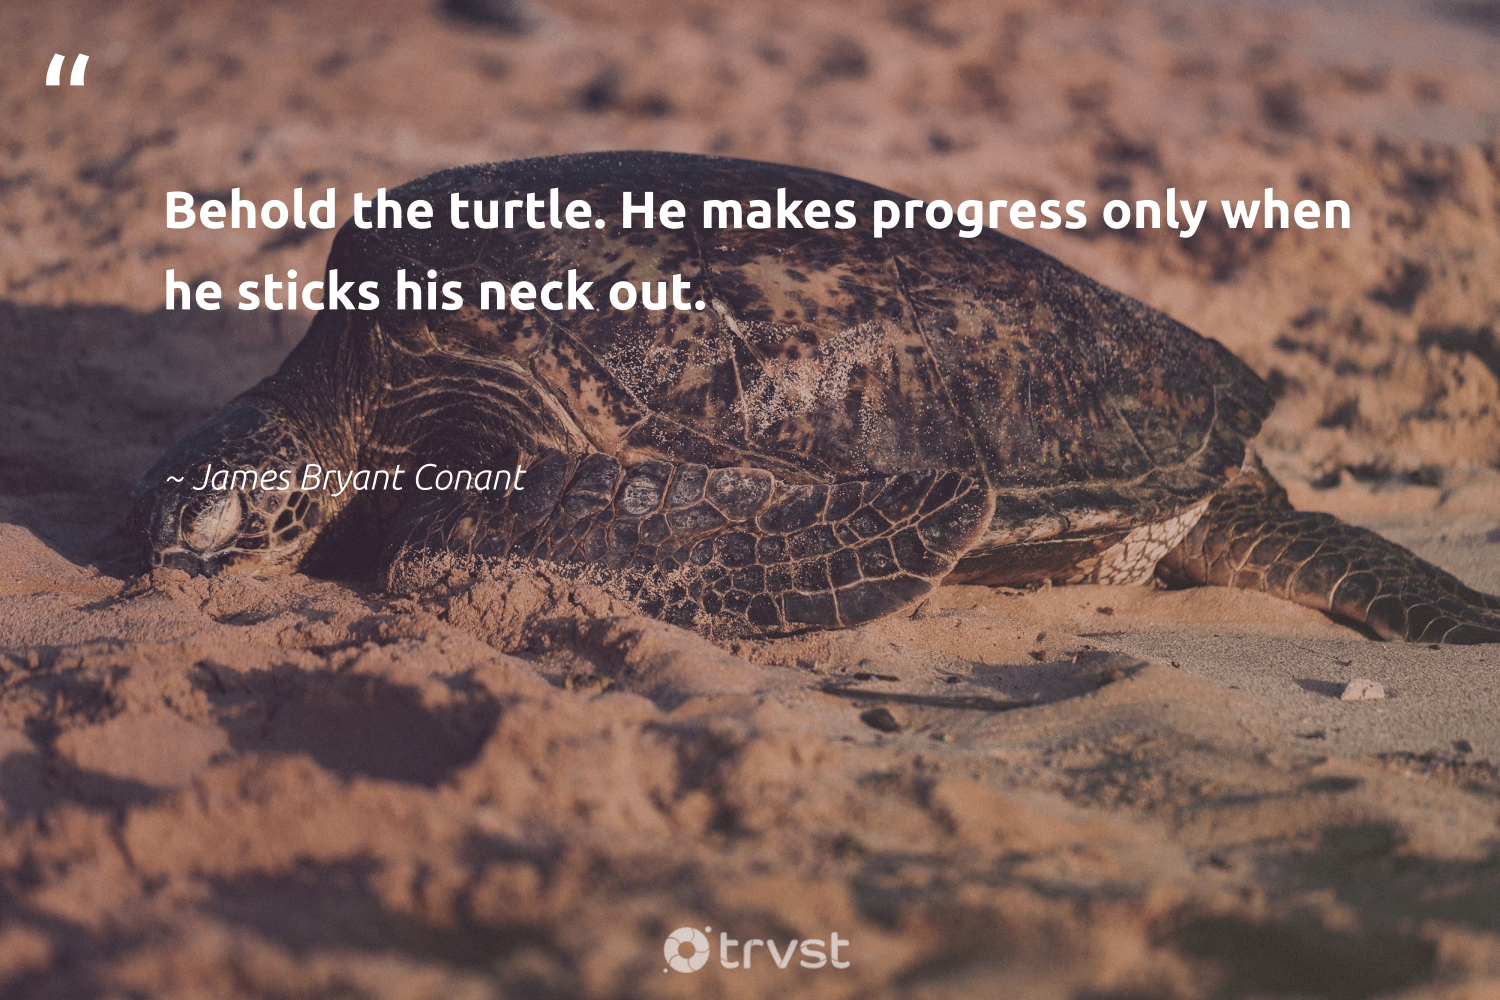 """Behold the turtle. He makes progress only when he sticks his neck out.""  - James Bryant Conant #trvst #quotes #turtle #oceans #bethechange #oceanconservation #changetheworld #aquaticlife #beinspired #amazingworld #collectiveaction #savetheturtle"